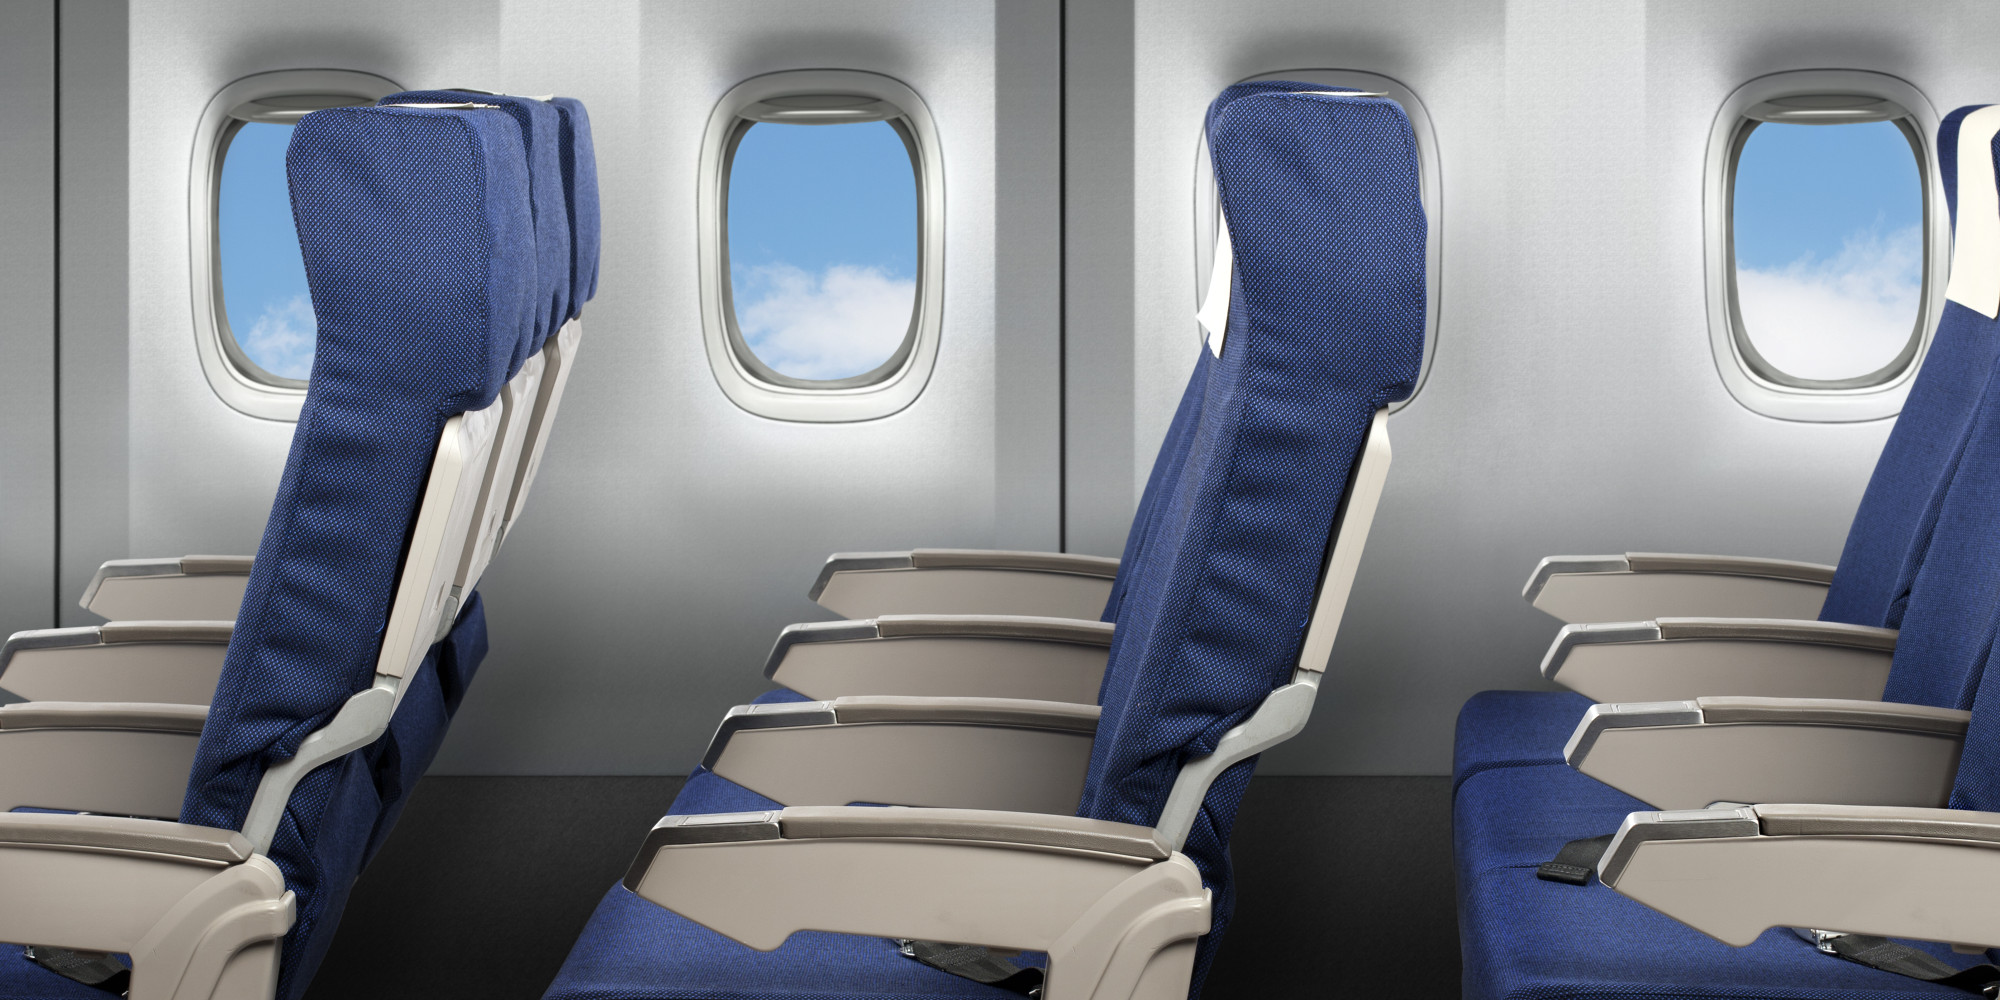 Best Seating on a Plane: A Guide to Picking the Safest, Smoothest Ride, or Quietest Seat